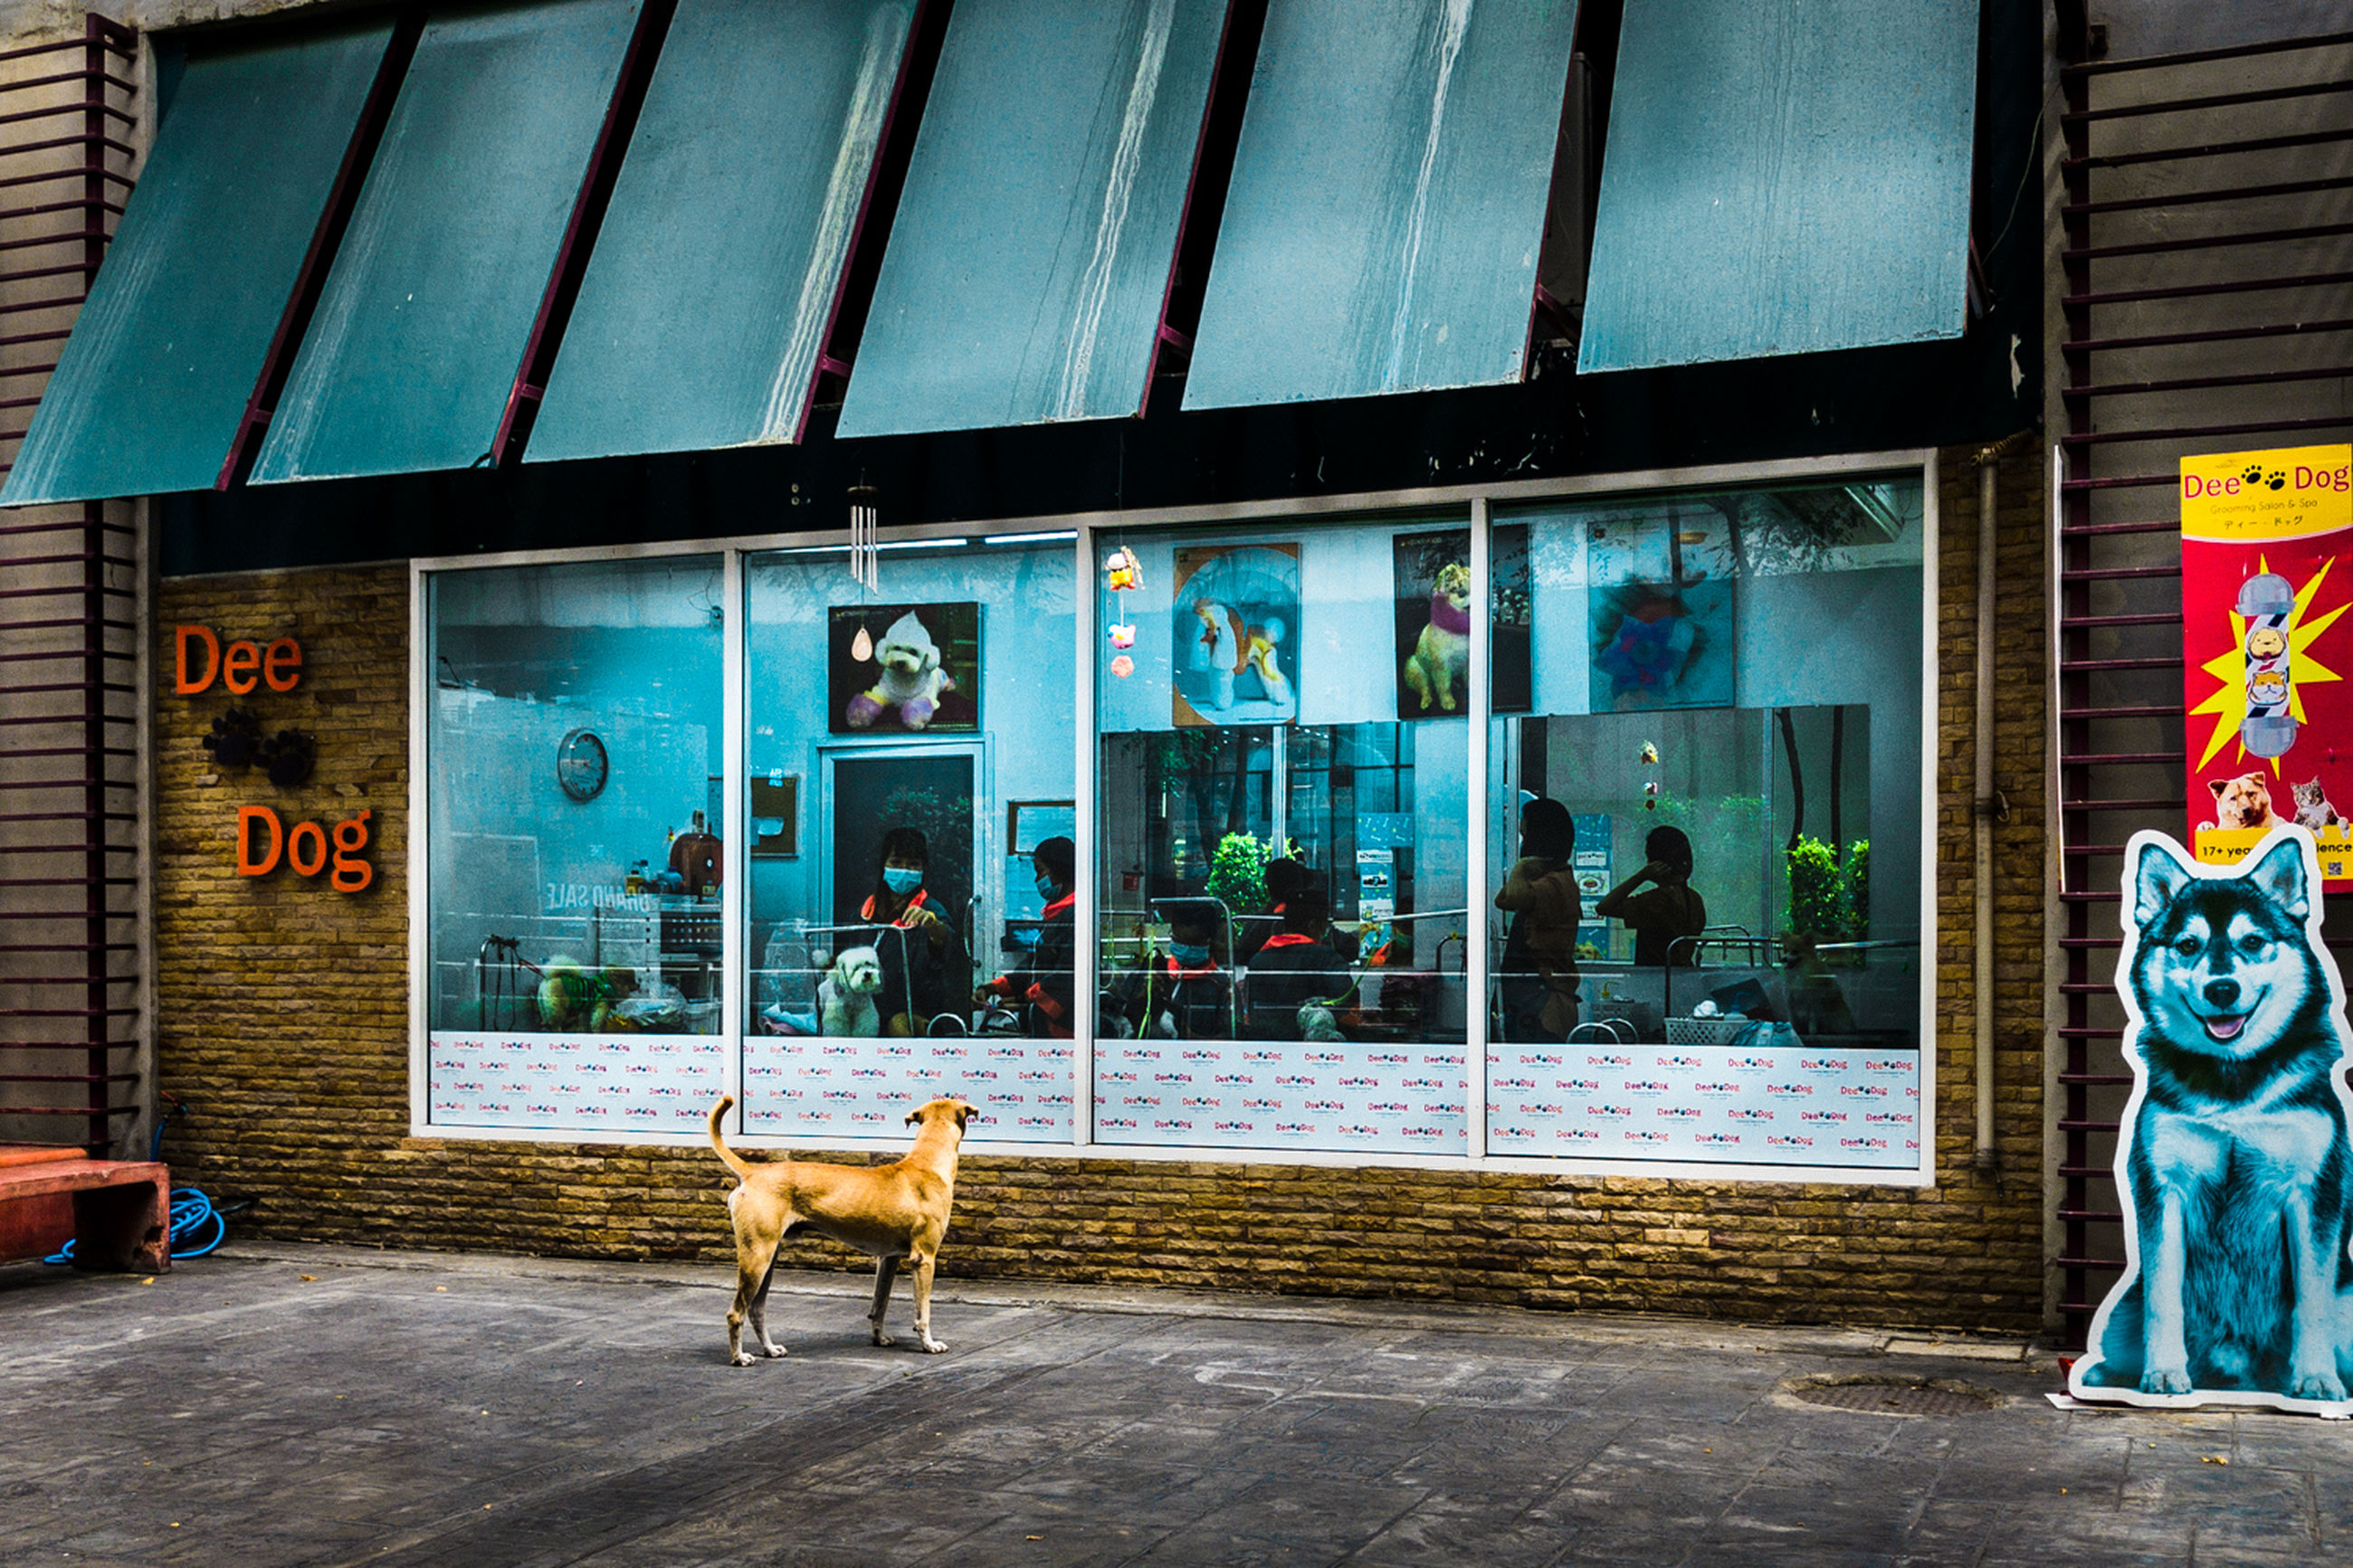 mammal, animal themes, domestic animals, animal, pets, one animal, domestic, building exterior, architecture, built structure, dog, canine, window, no people, vertebrate, building, day, glass - material, city, standing